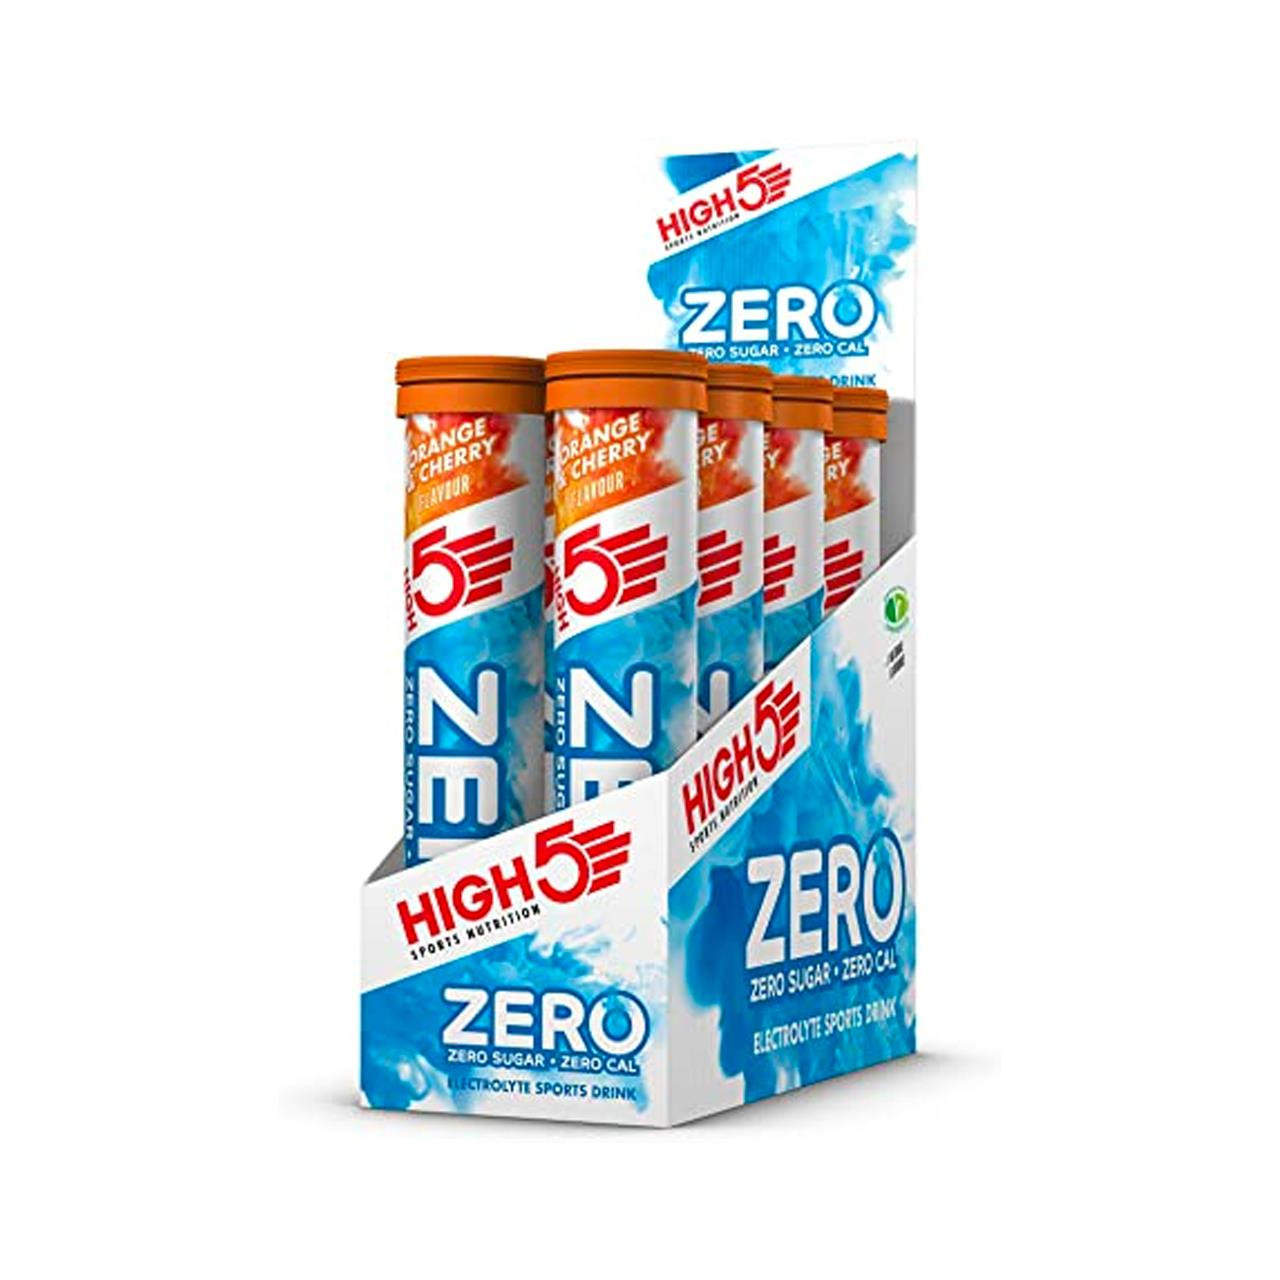 High 5 Zero Tabs, 18 Pack (Orange and Cherry)